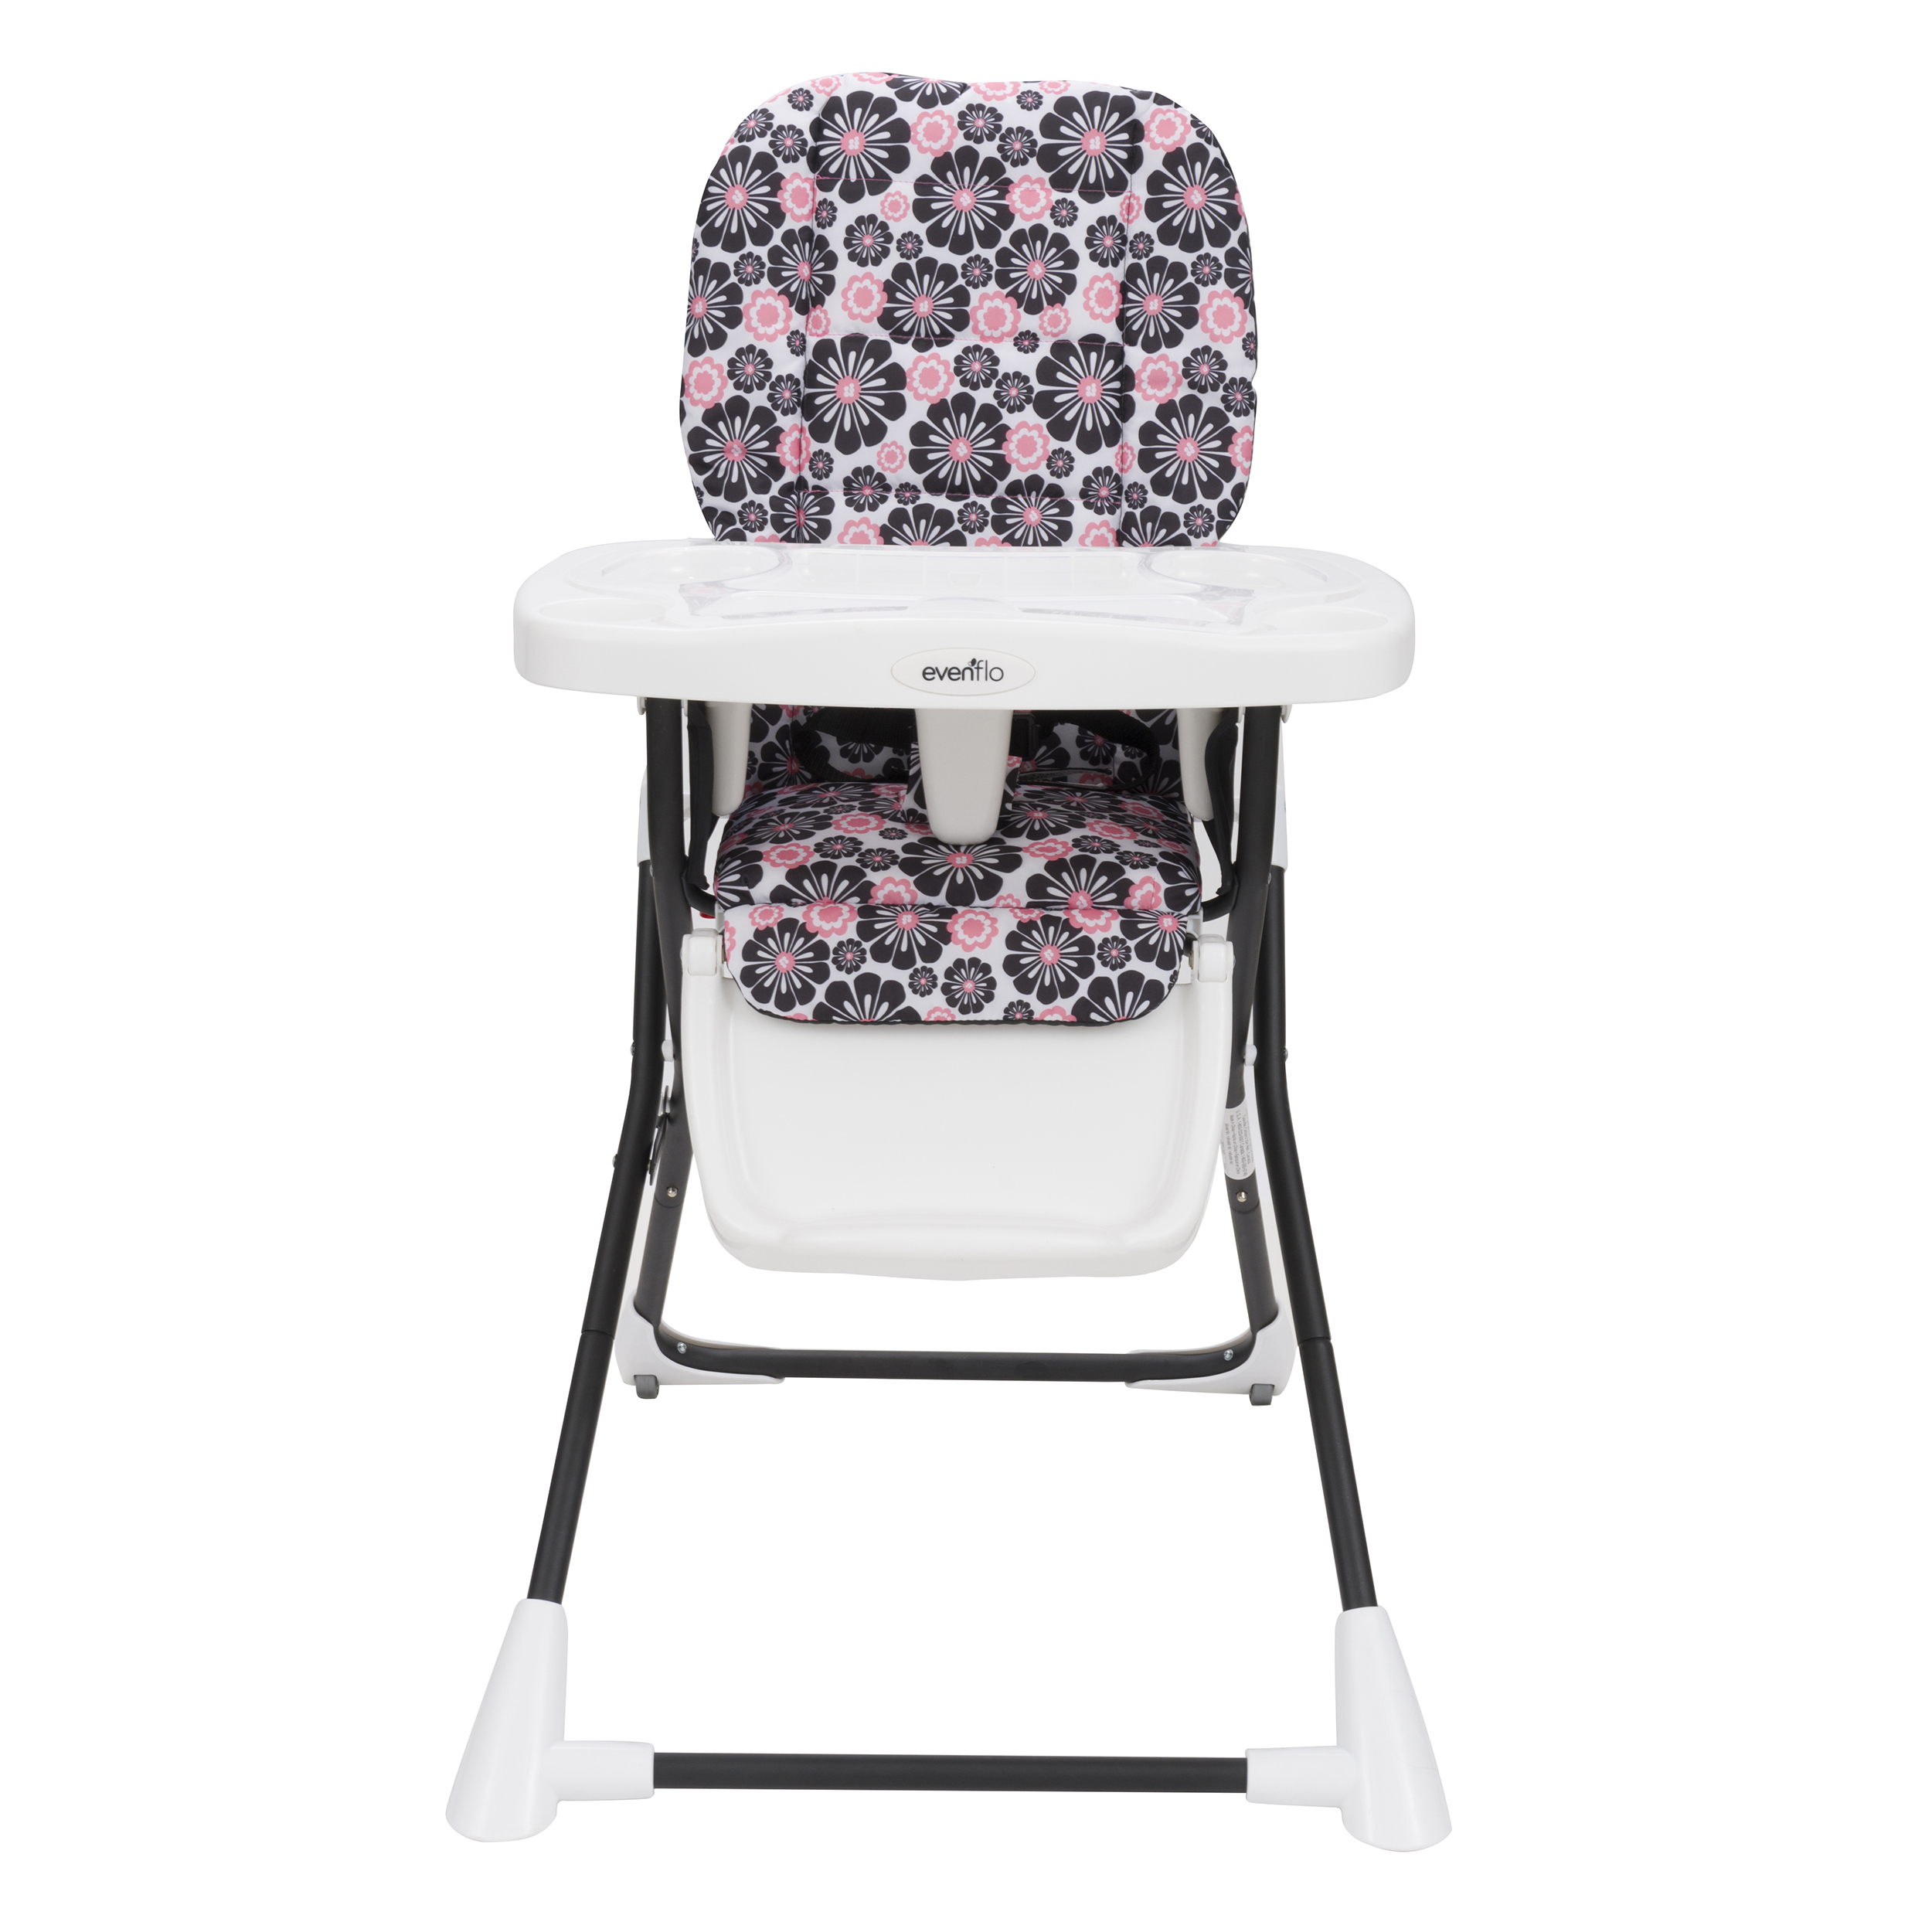 Evenflo Compact Fold High Chair Evenflo Compact Fold High Chair Penelope Baby Baby